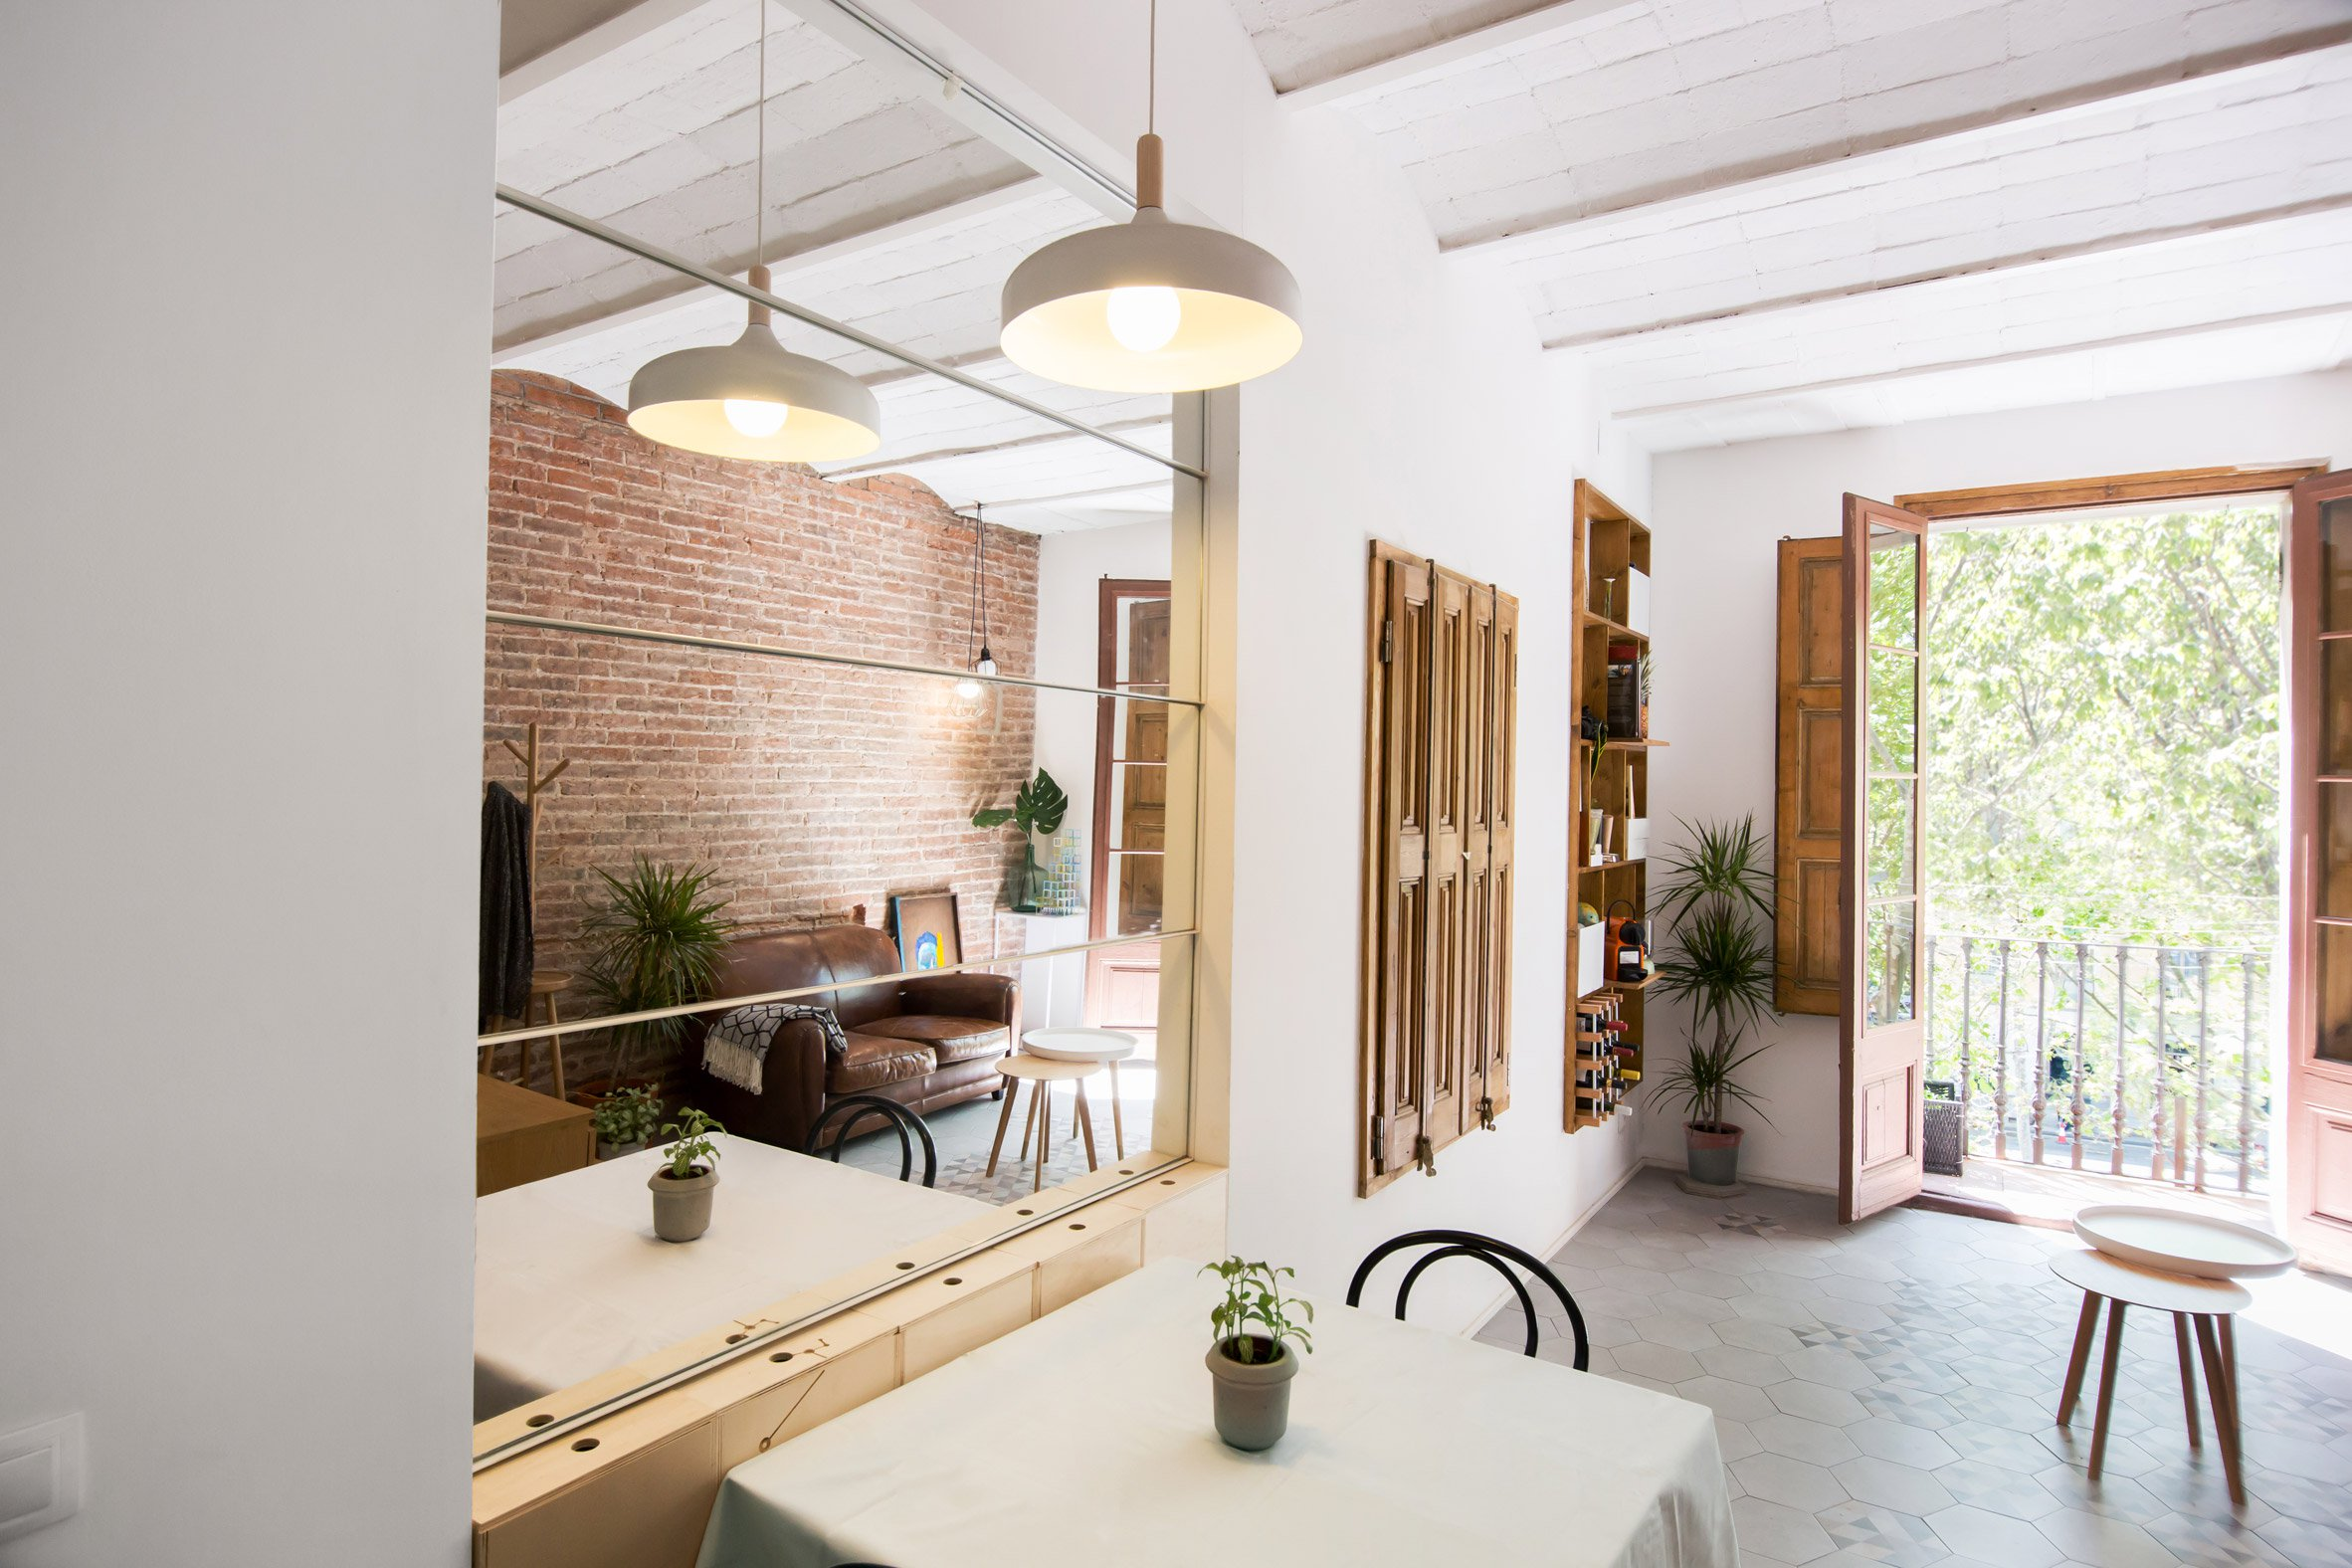 4. A 25 square metre apartment in Barcelona by Naimi Architecture - A 25-square-metre apartment in Barcelona by Naimi Architecture